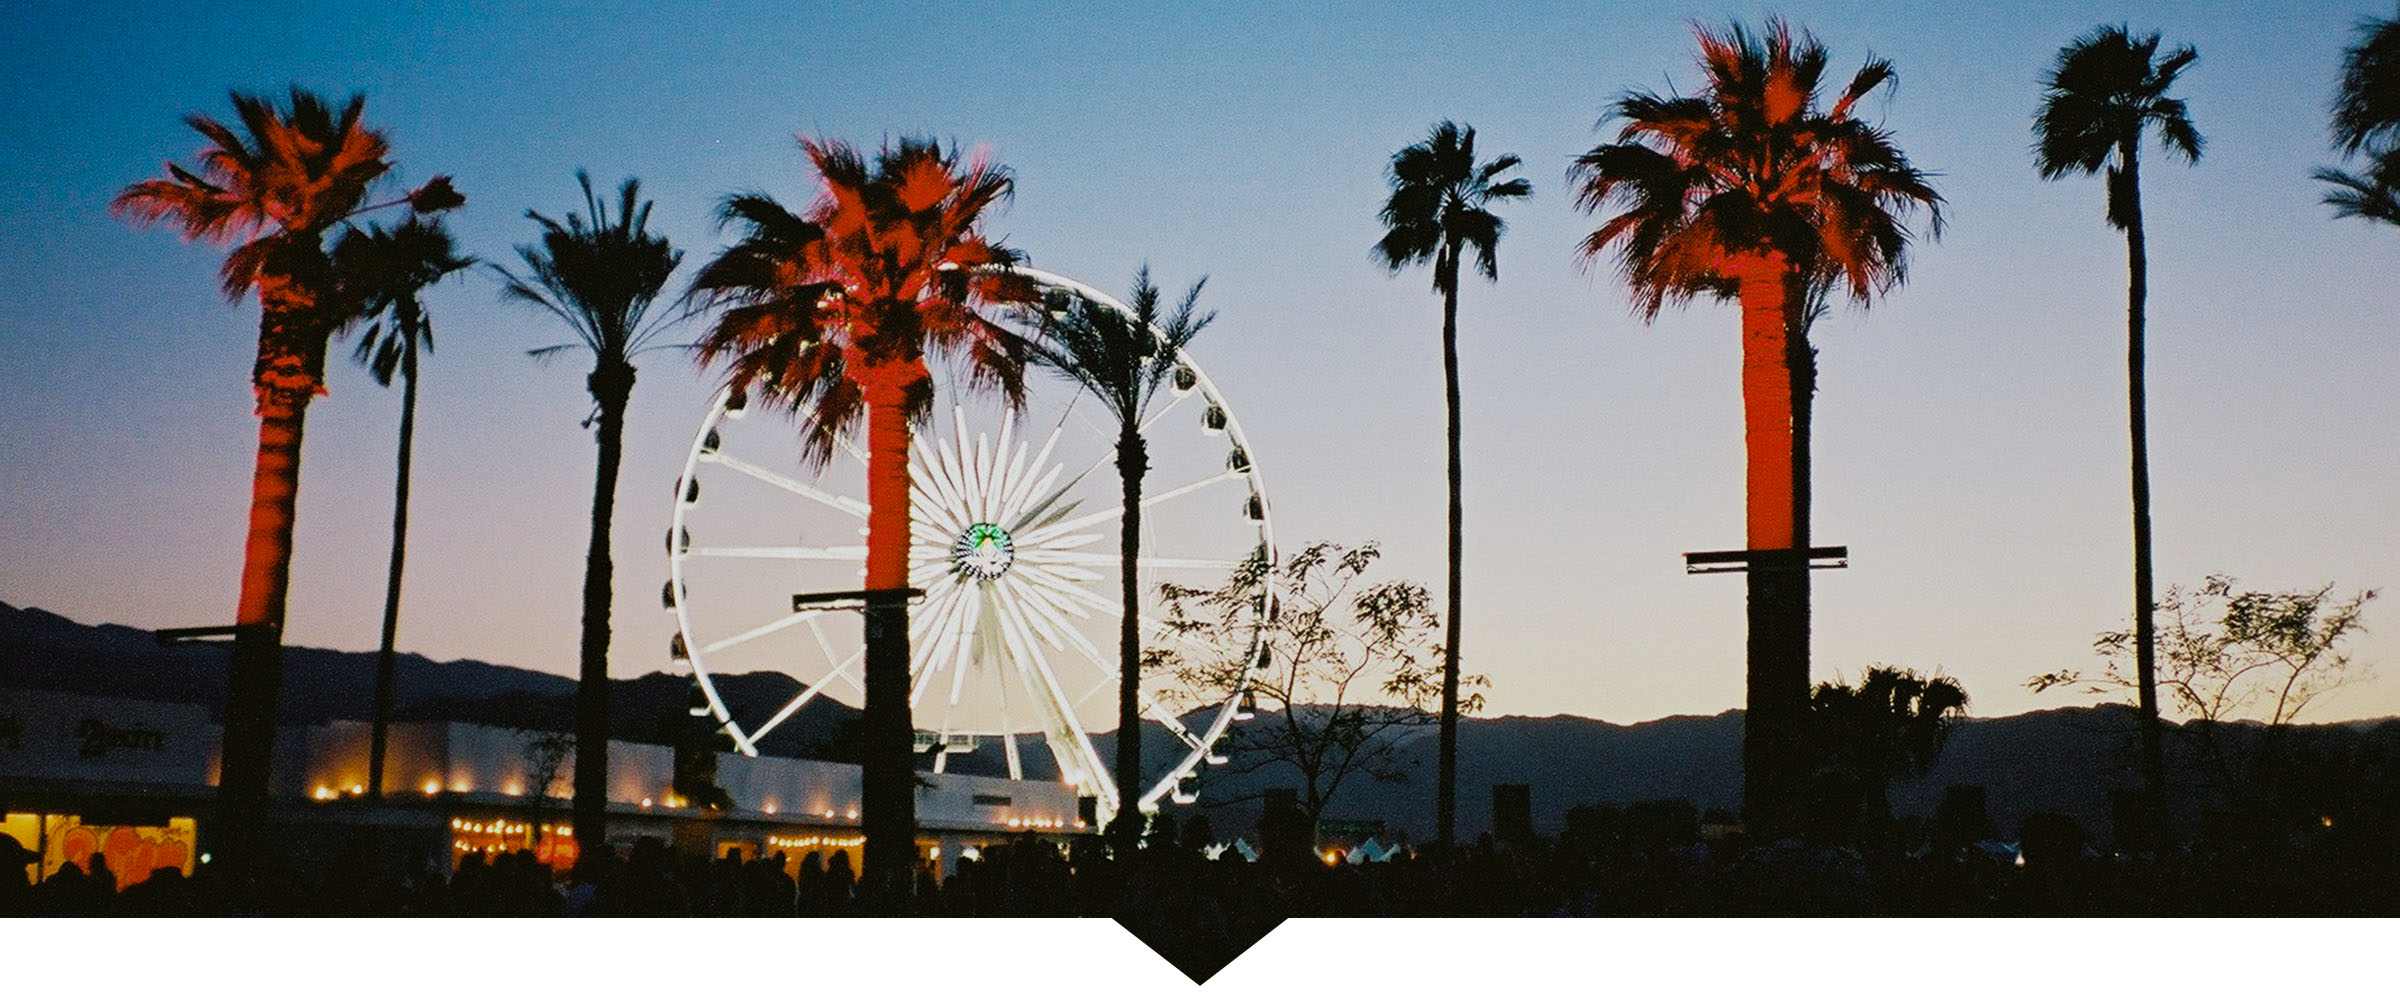 The Travel File: A Guide To Coachella